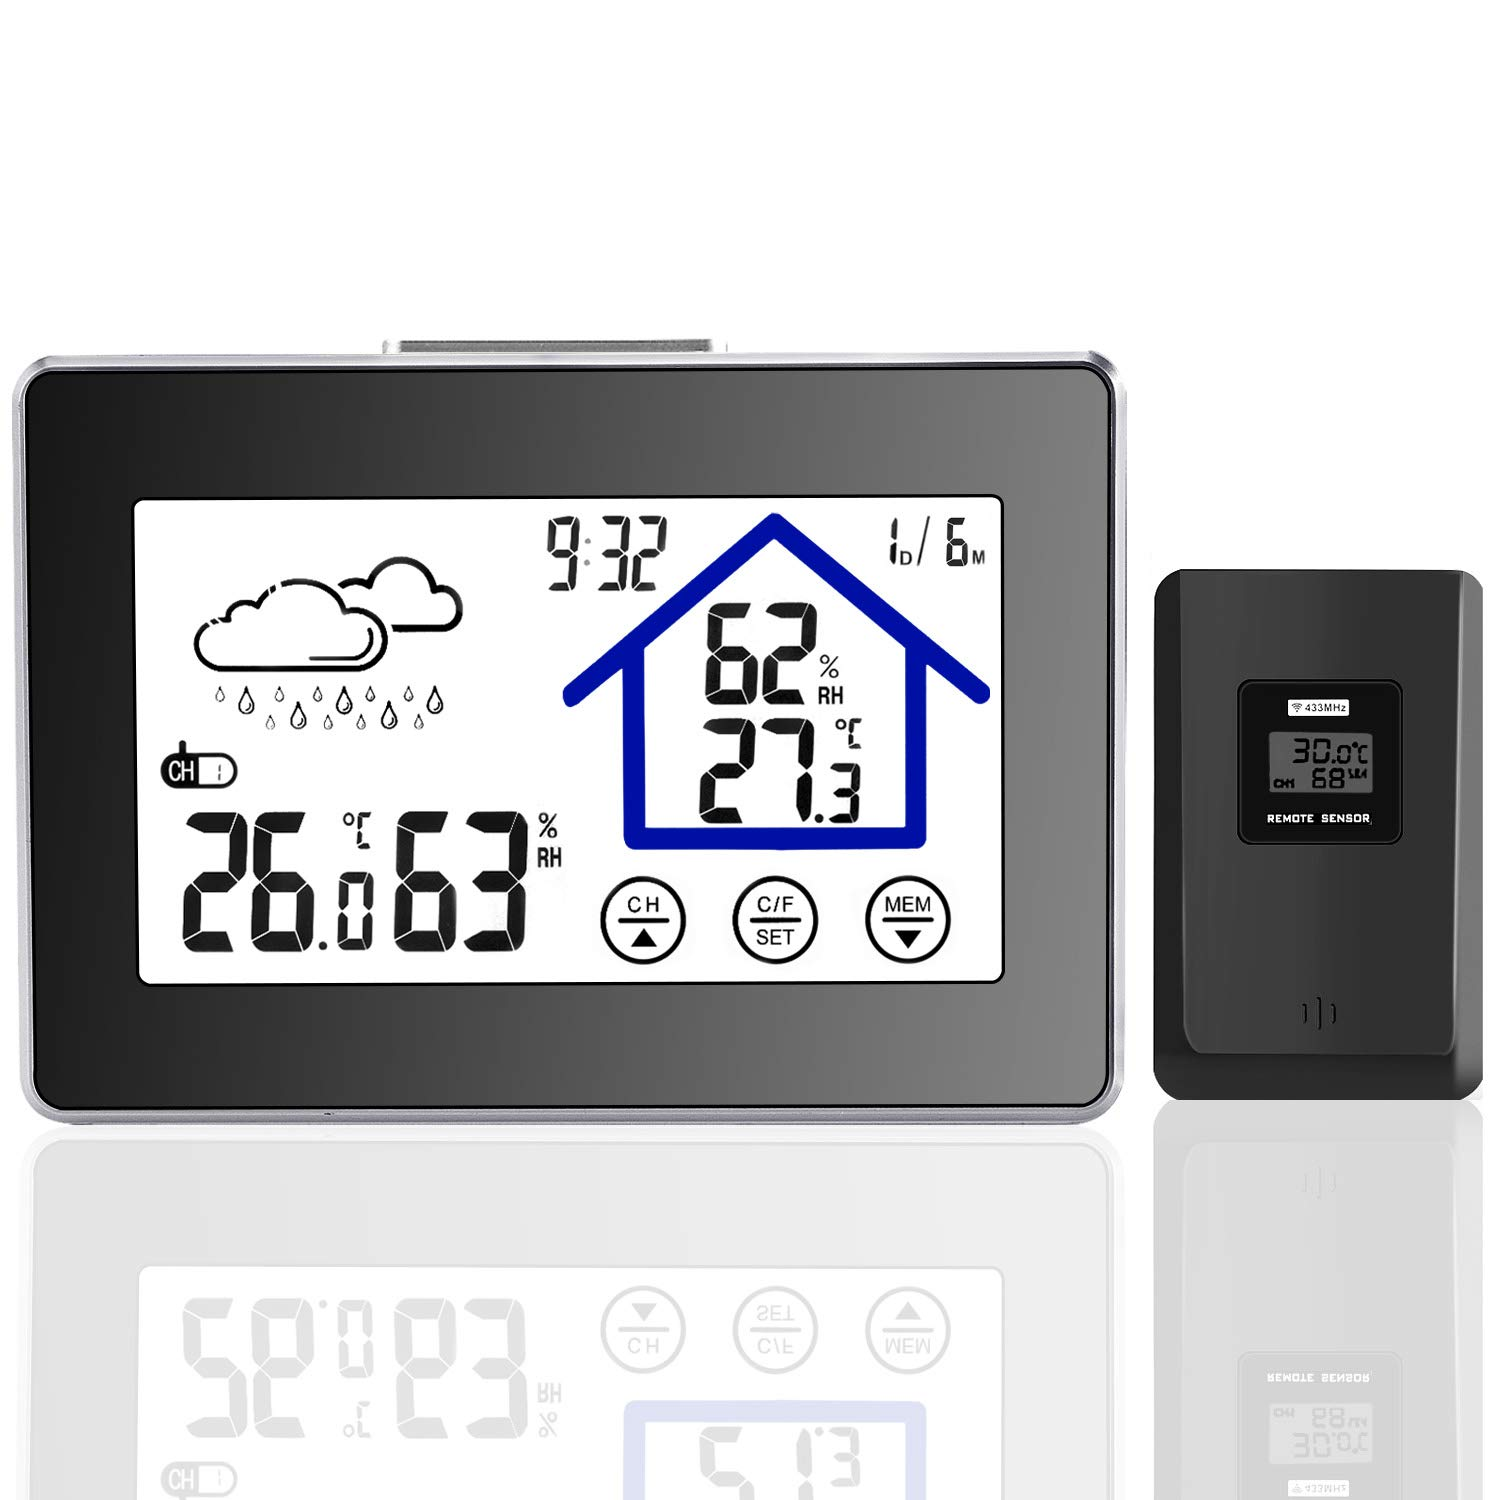 Joypea Wireless Weather Station,Indoor/Outdoor Wireless Temperature and Humidity Monitor- Temperature, Humidity, Current Time Backlight Outdoor Sensor-Black